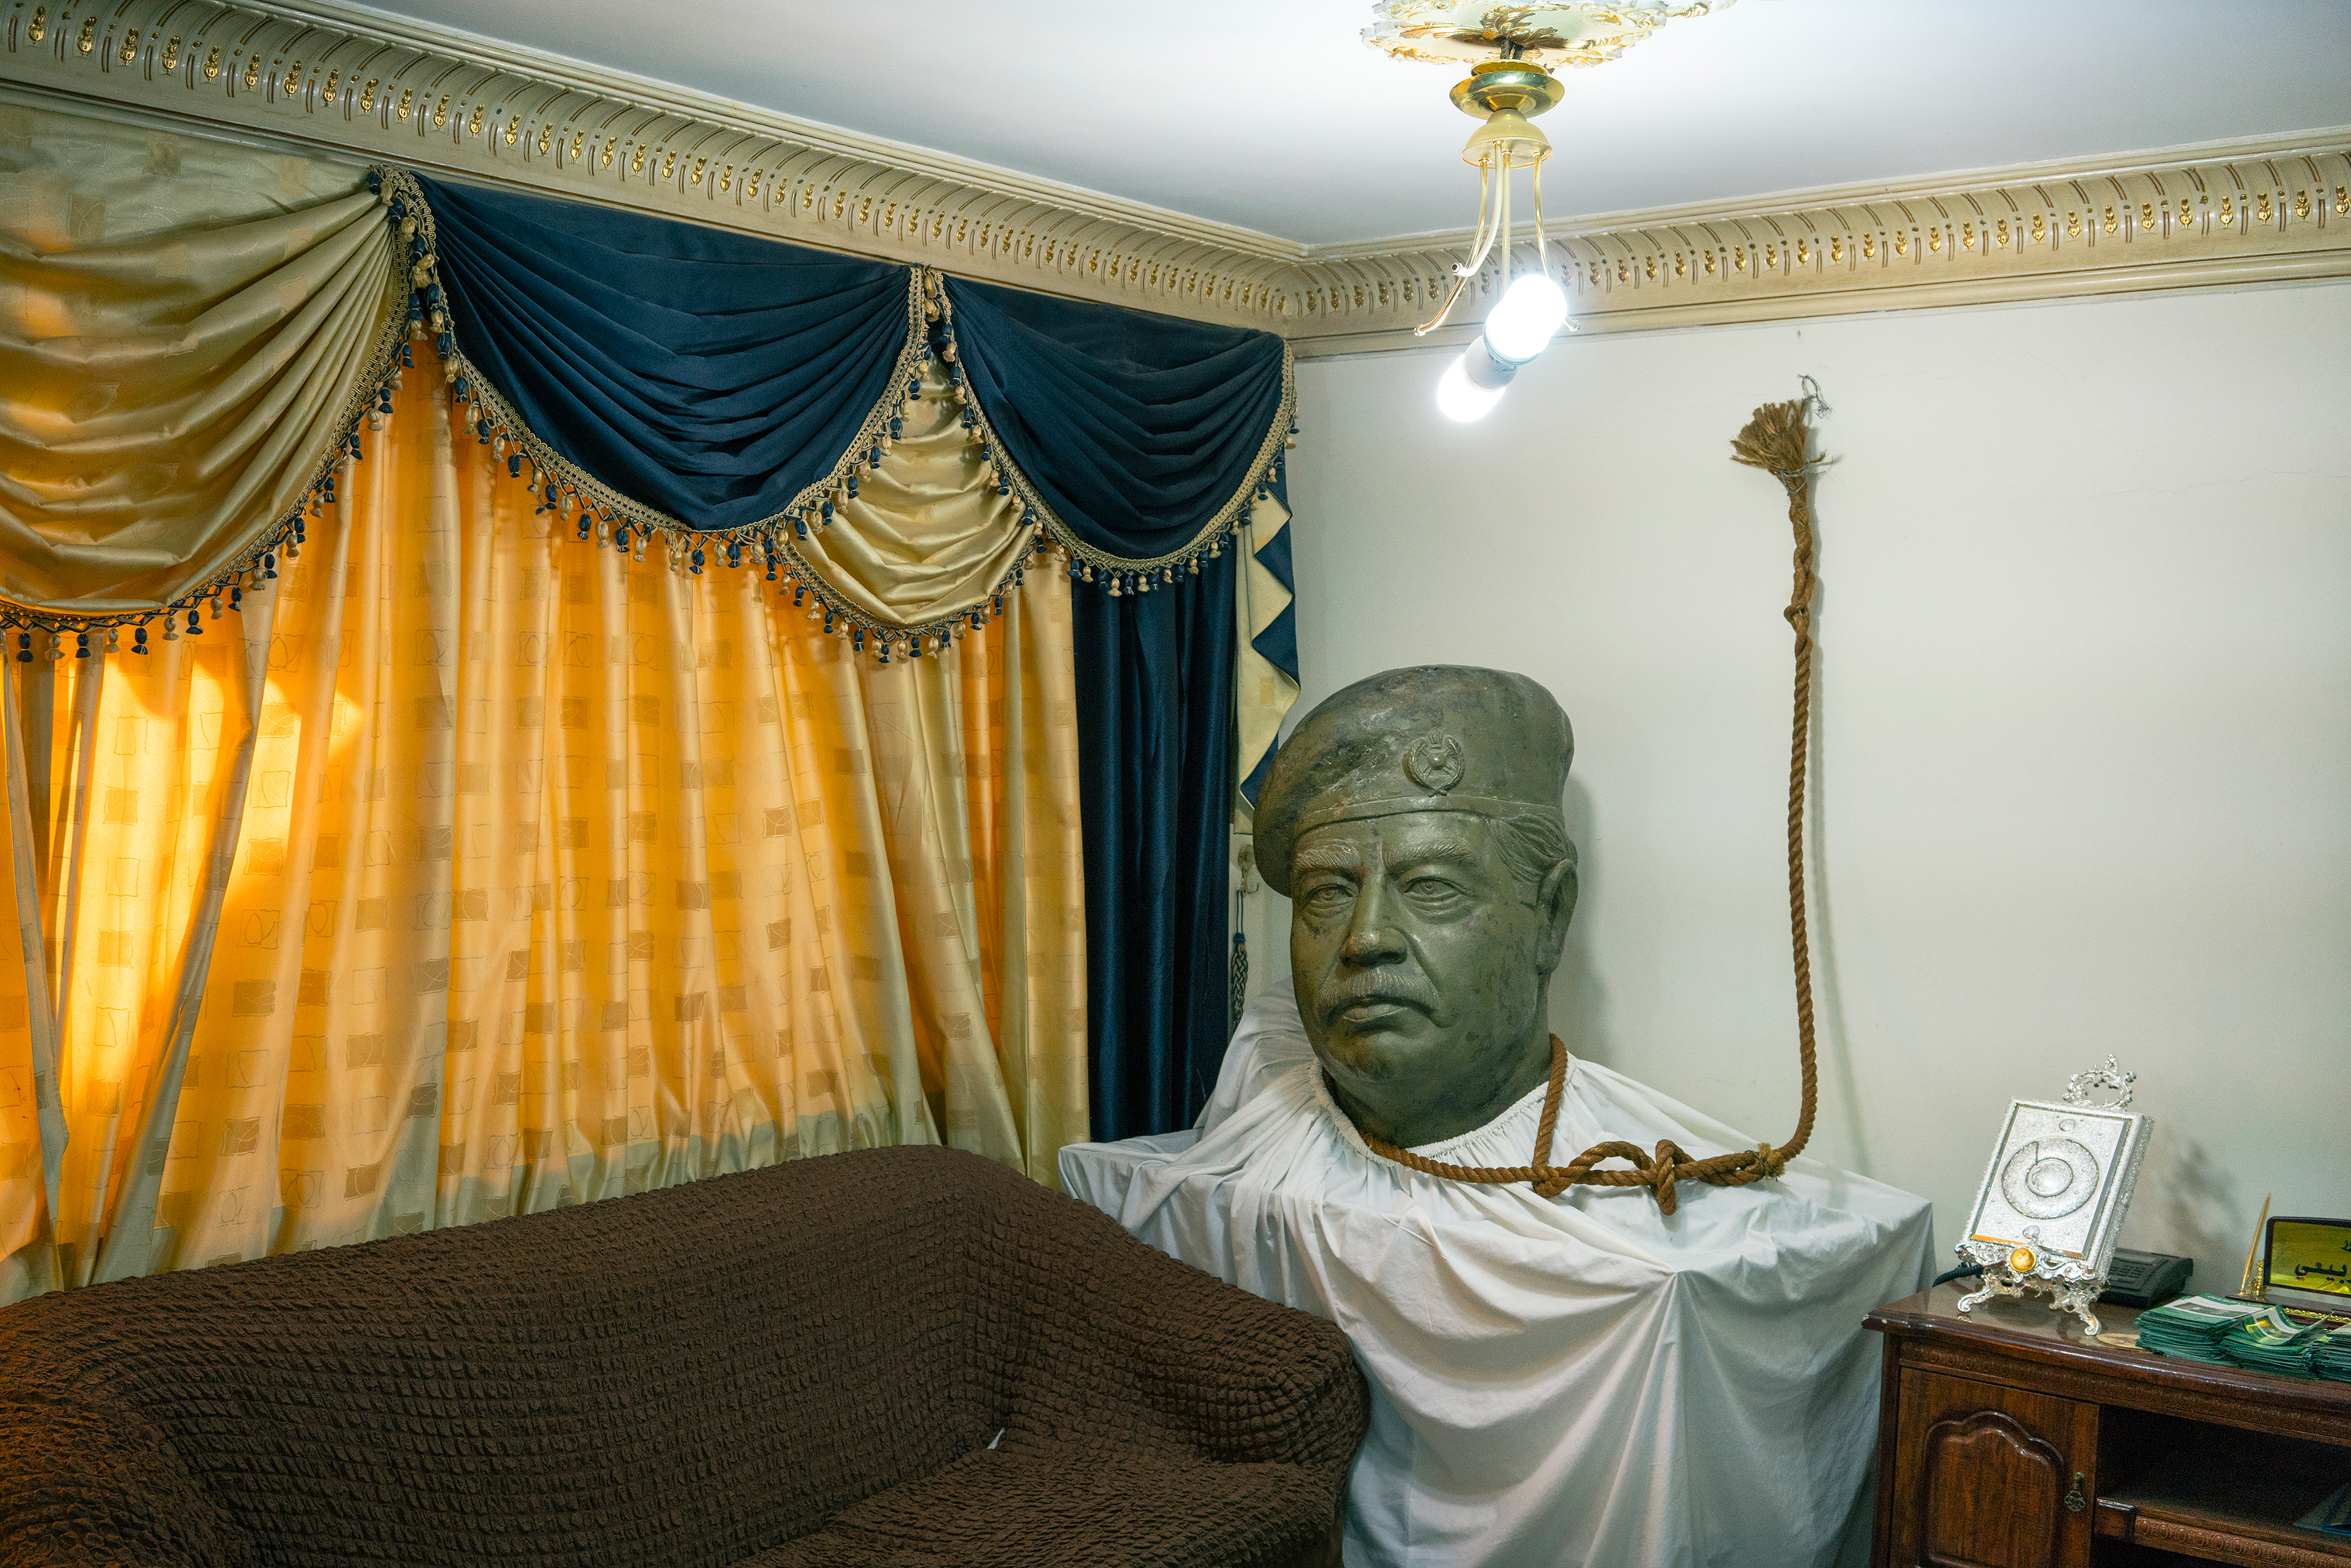 The rope used to execute former Iraqi President Saddam Hussein is in the Baghdad home of Mowaffak al-Rubaie, who witnessed the hanging.